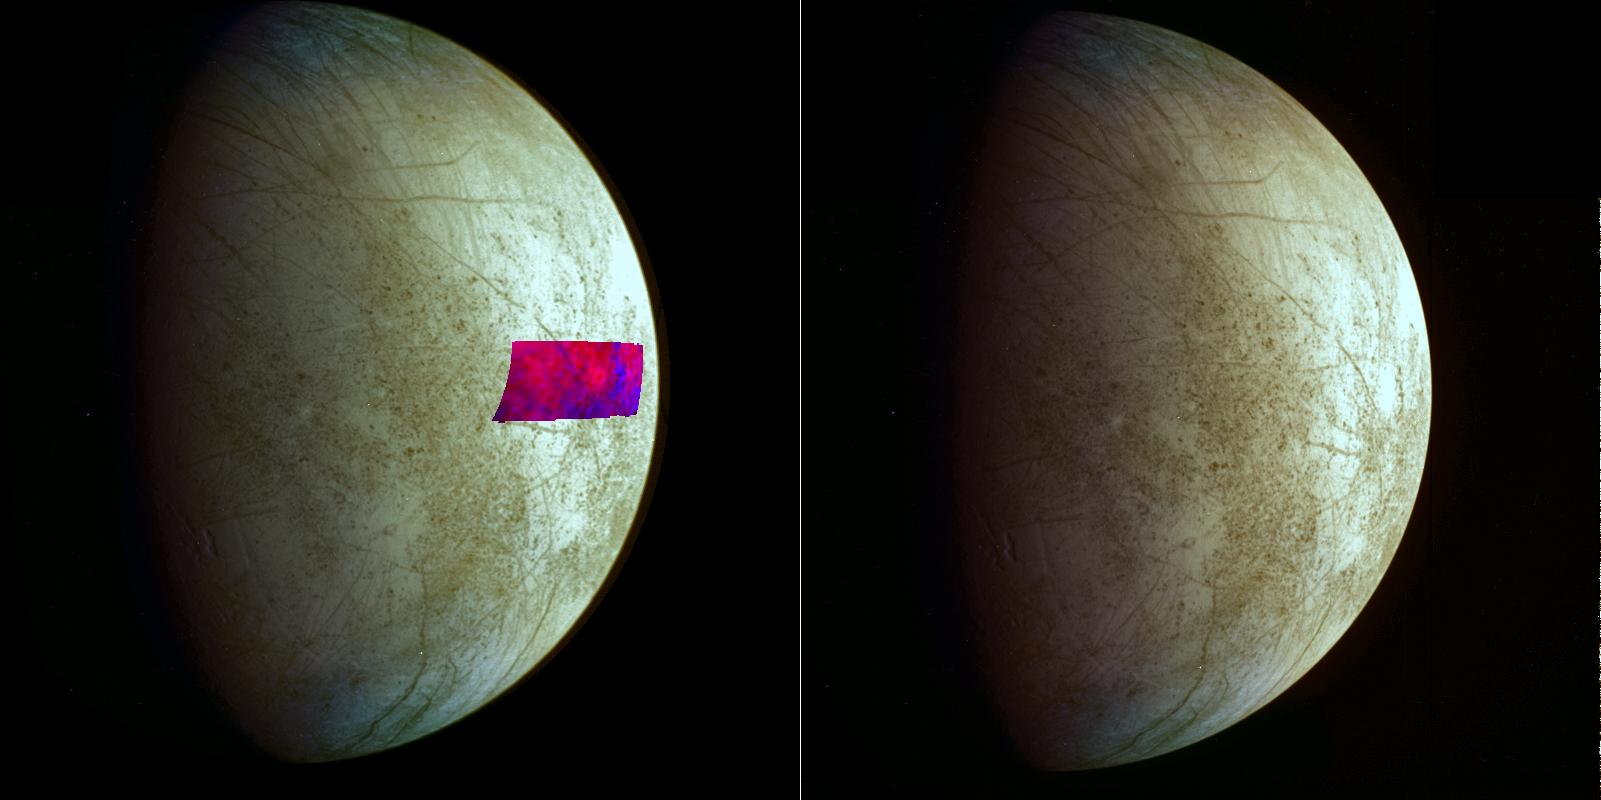 two color, global views of europa, one with a color region superimposed showing the chemical composition of surface features